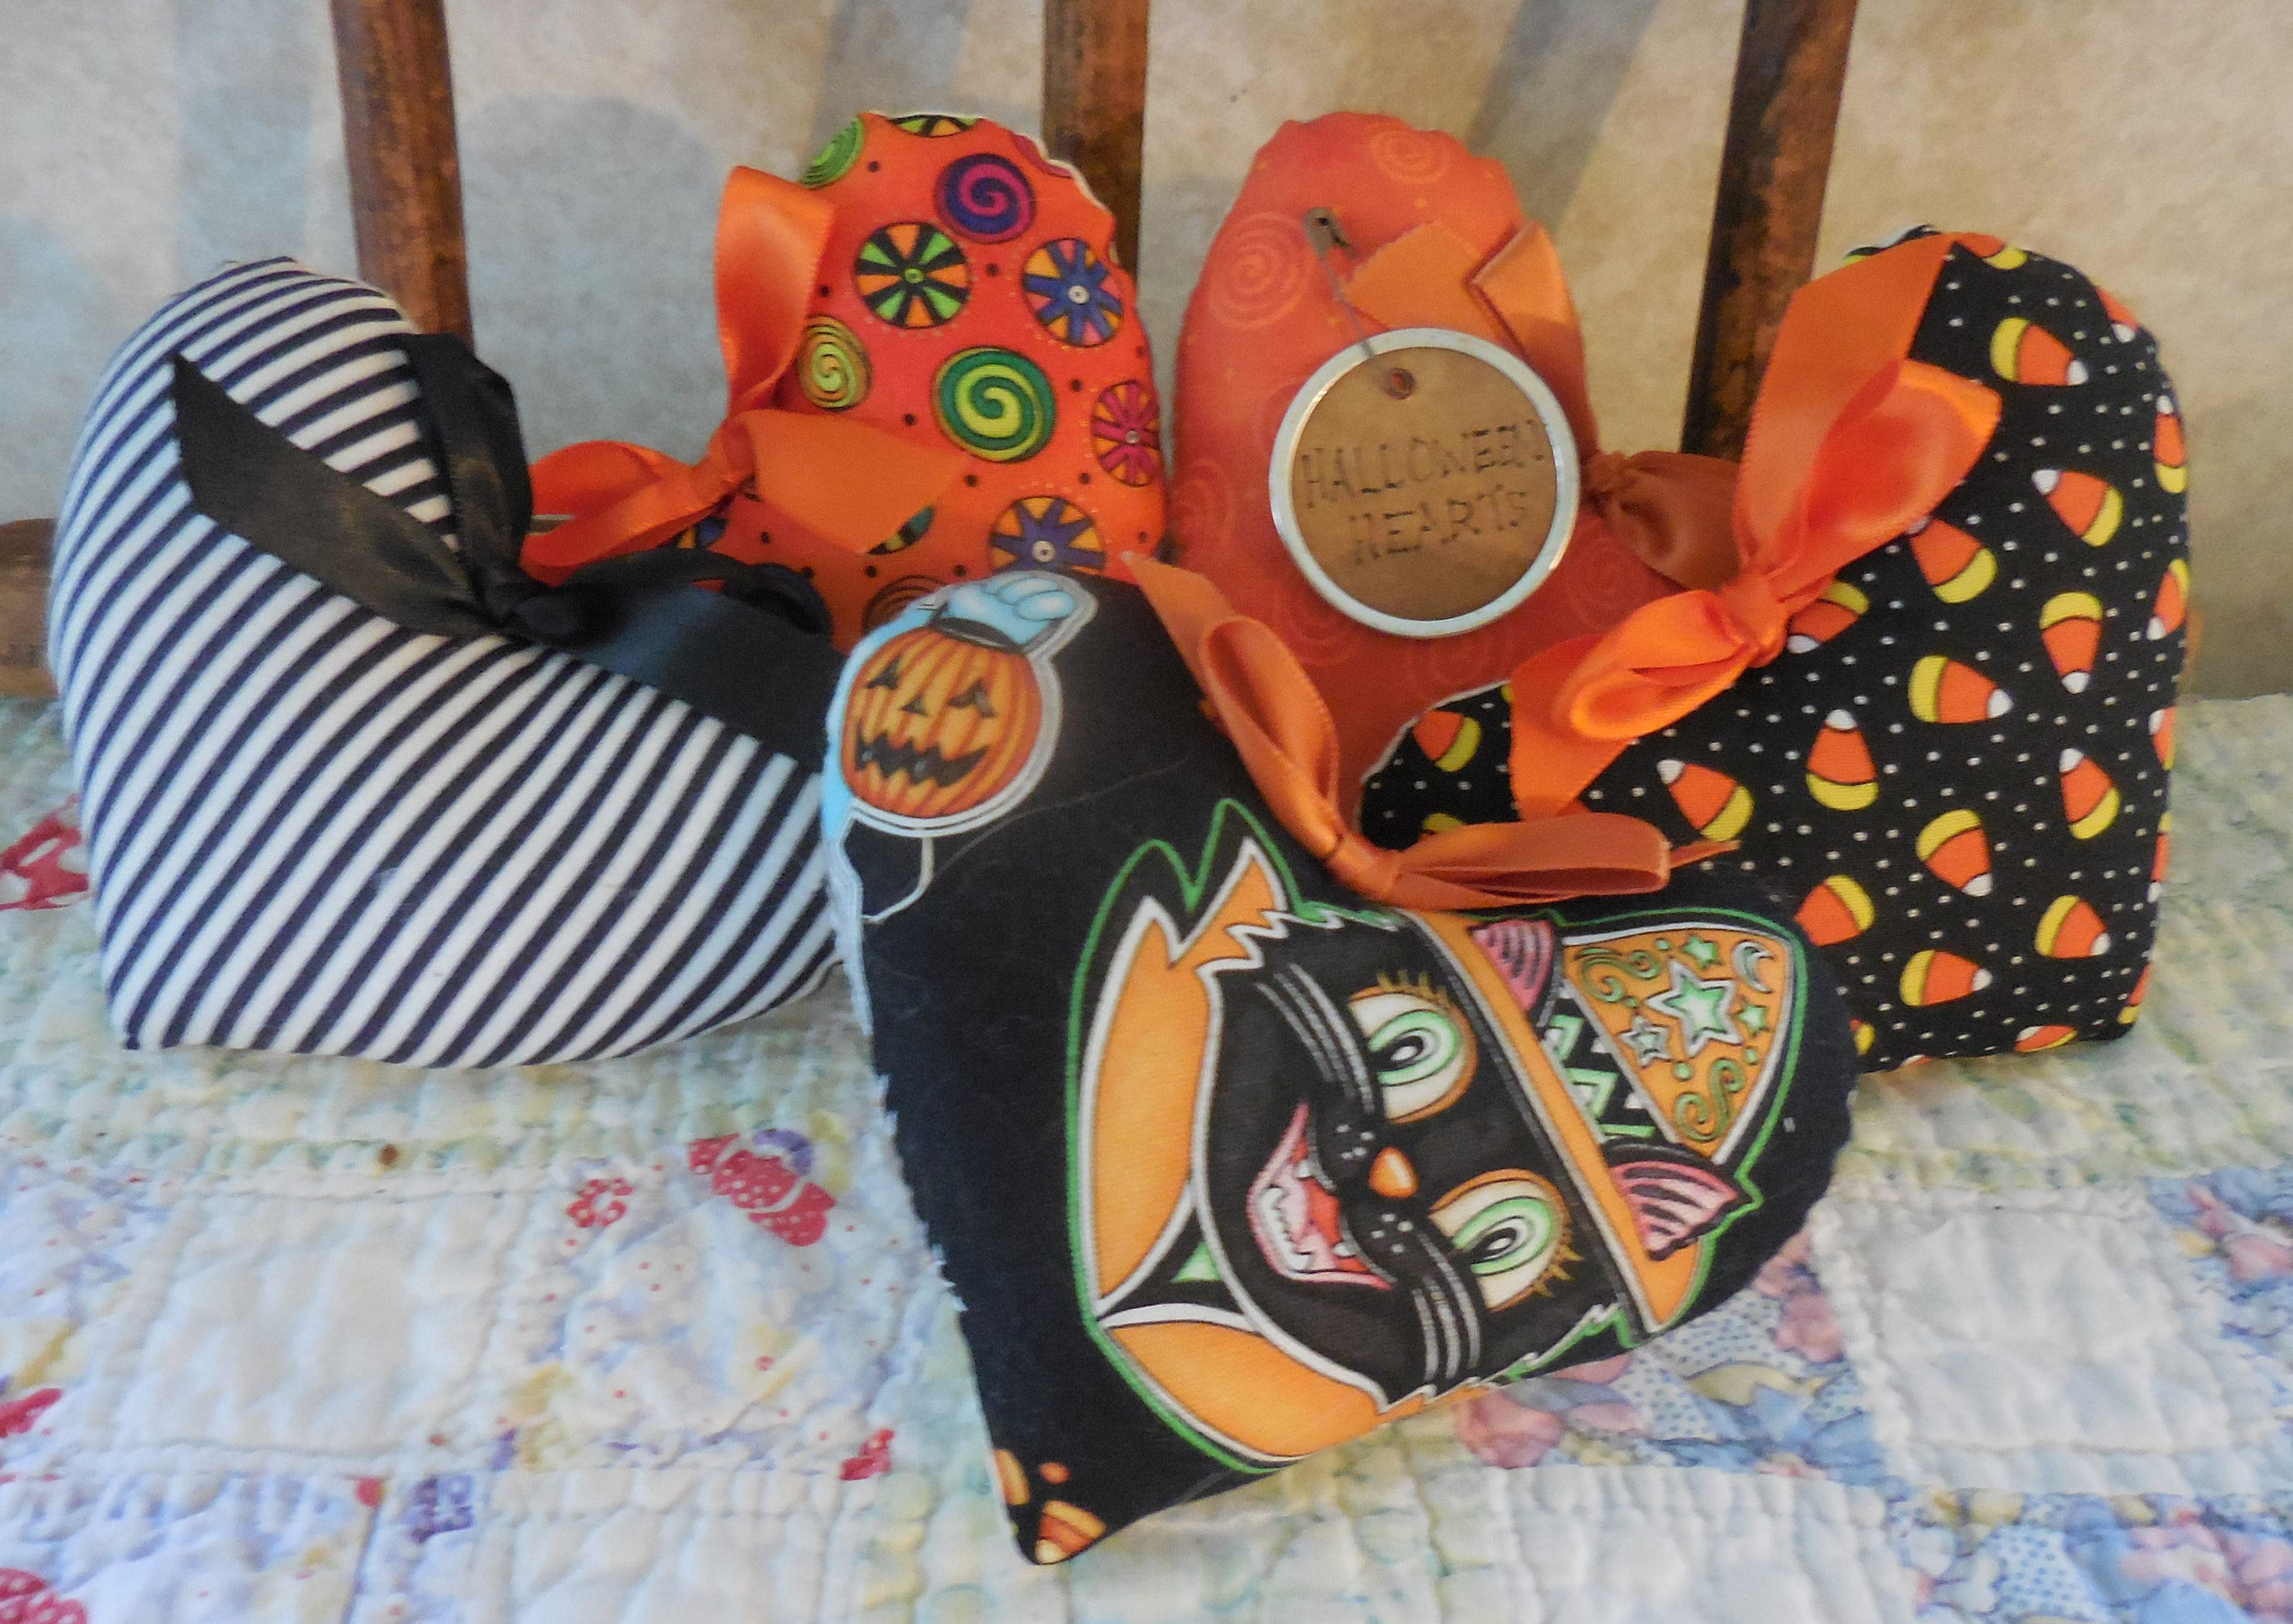 Primitive Halloween Prim Bowl Fillers Orange Black Heart Tucks - Primitive Halloween Decor